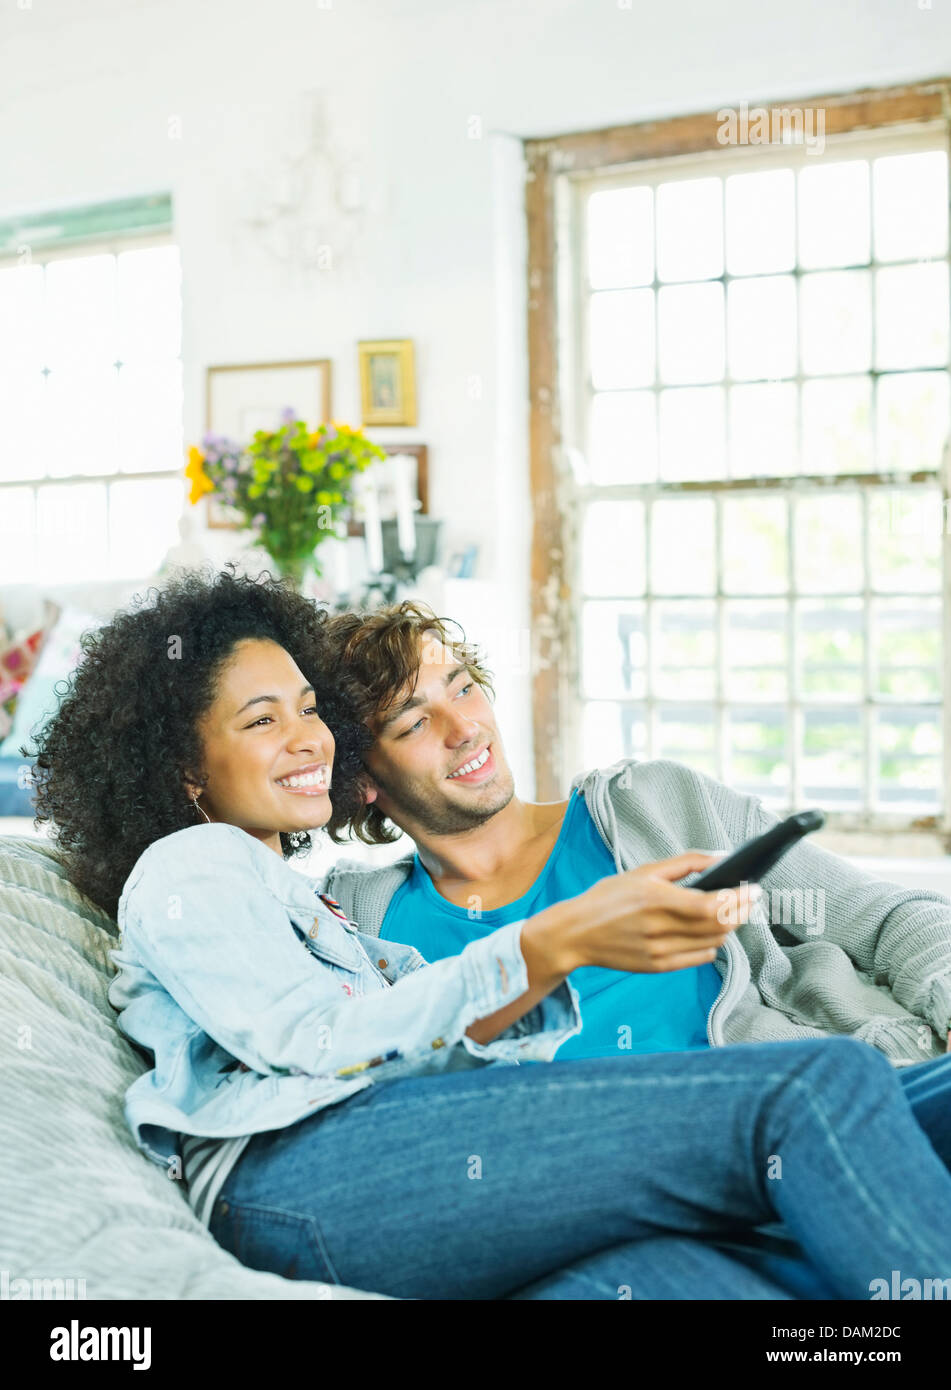 Couple watching television in beanbag chair - Stock Image